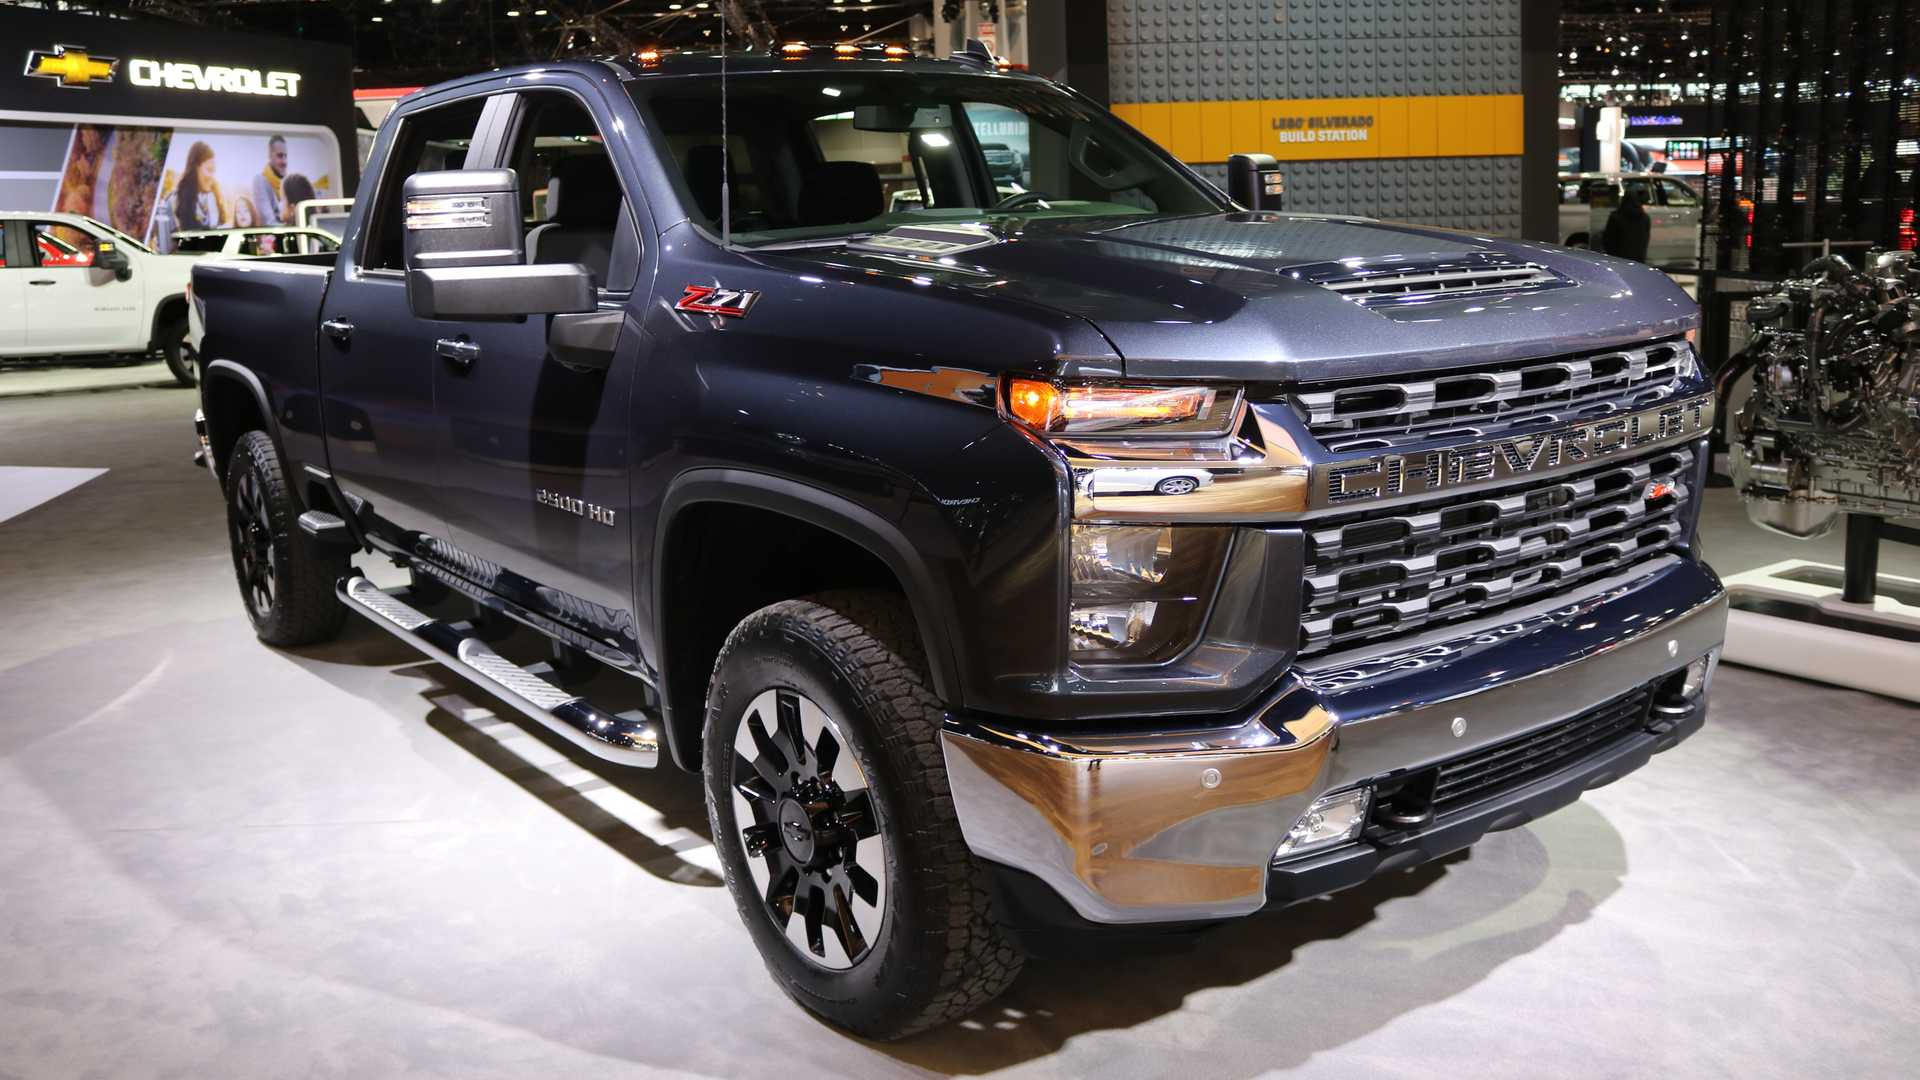 20 Best Review 2020 Chevrolet Silverado 1500 Ld Redesign and Concept with 2020 Chevrolet Silverado 1500 Ld